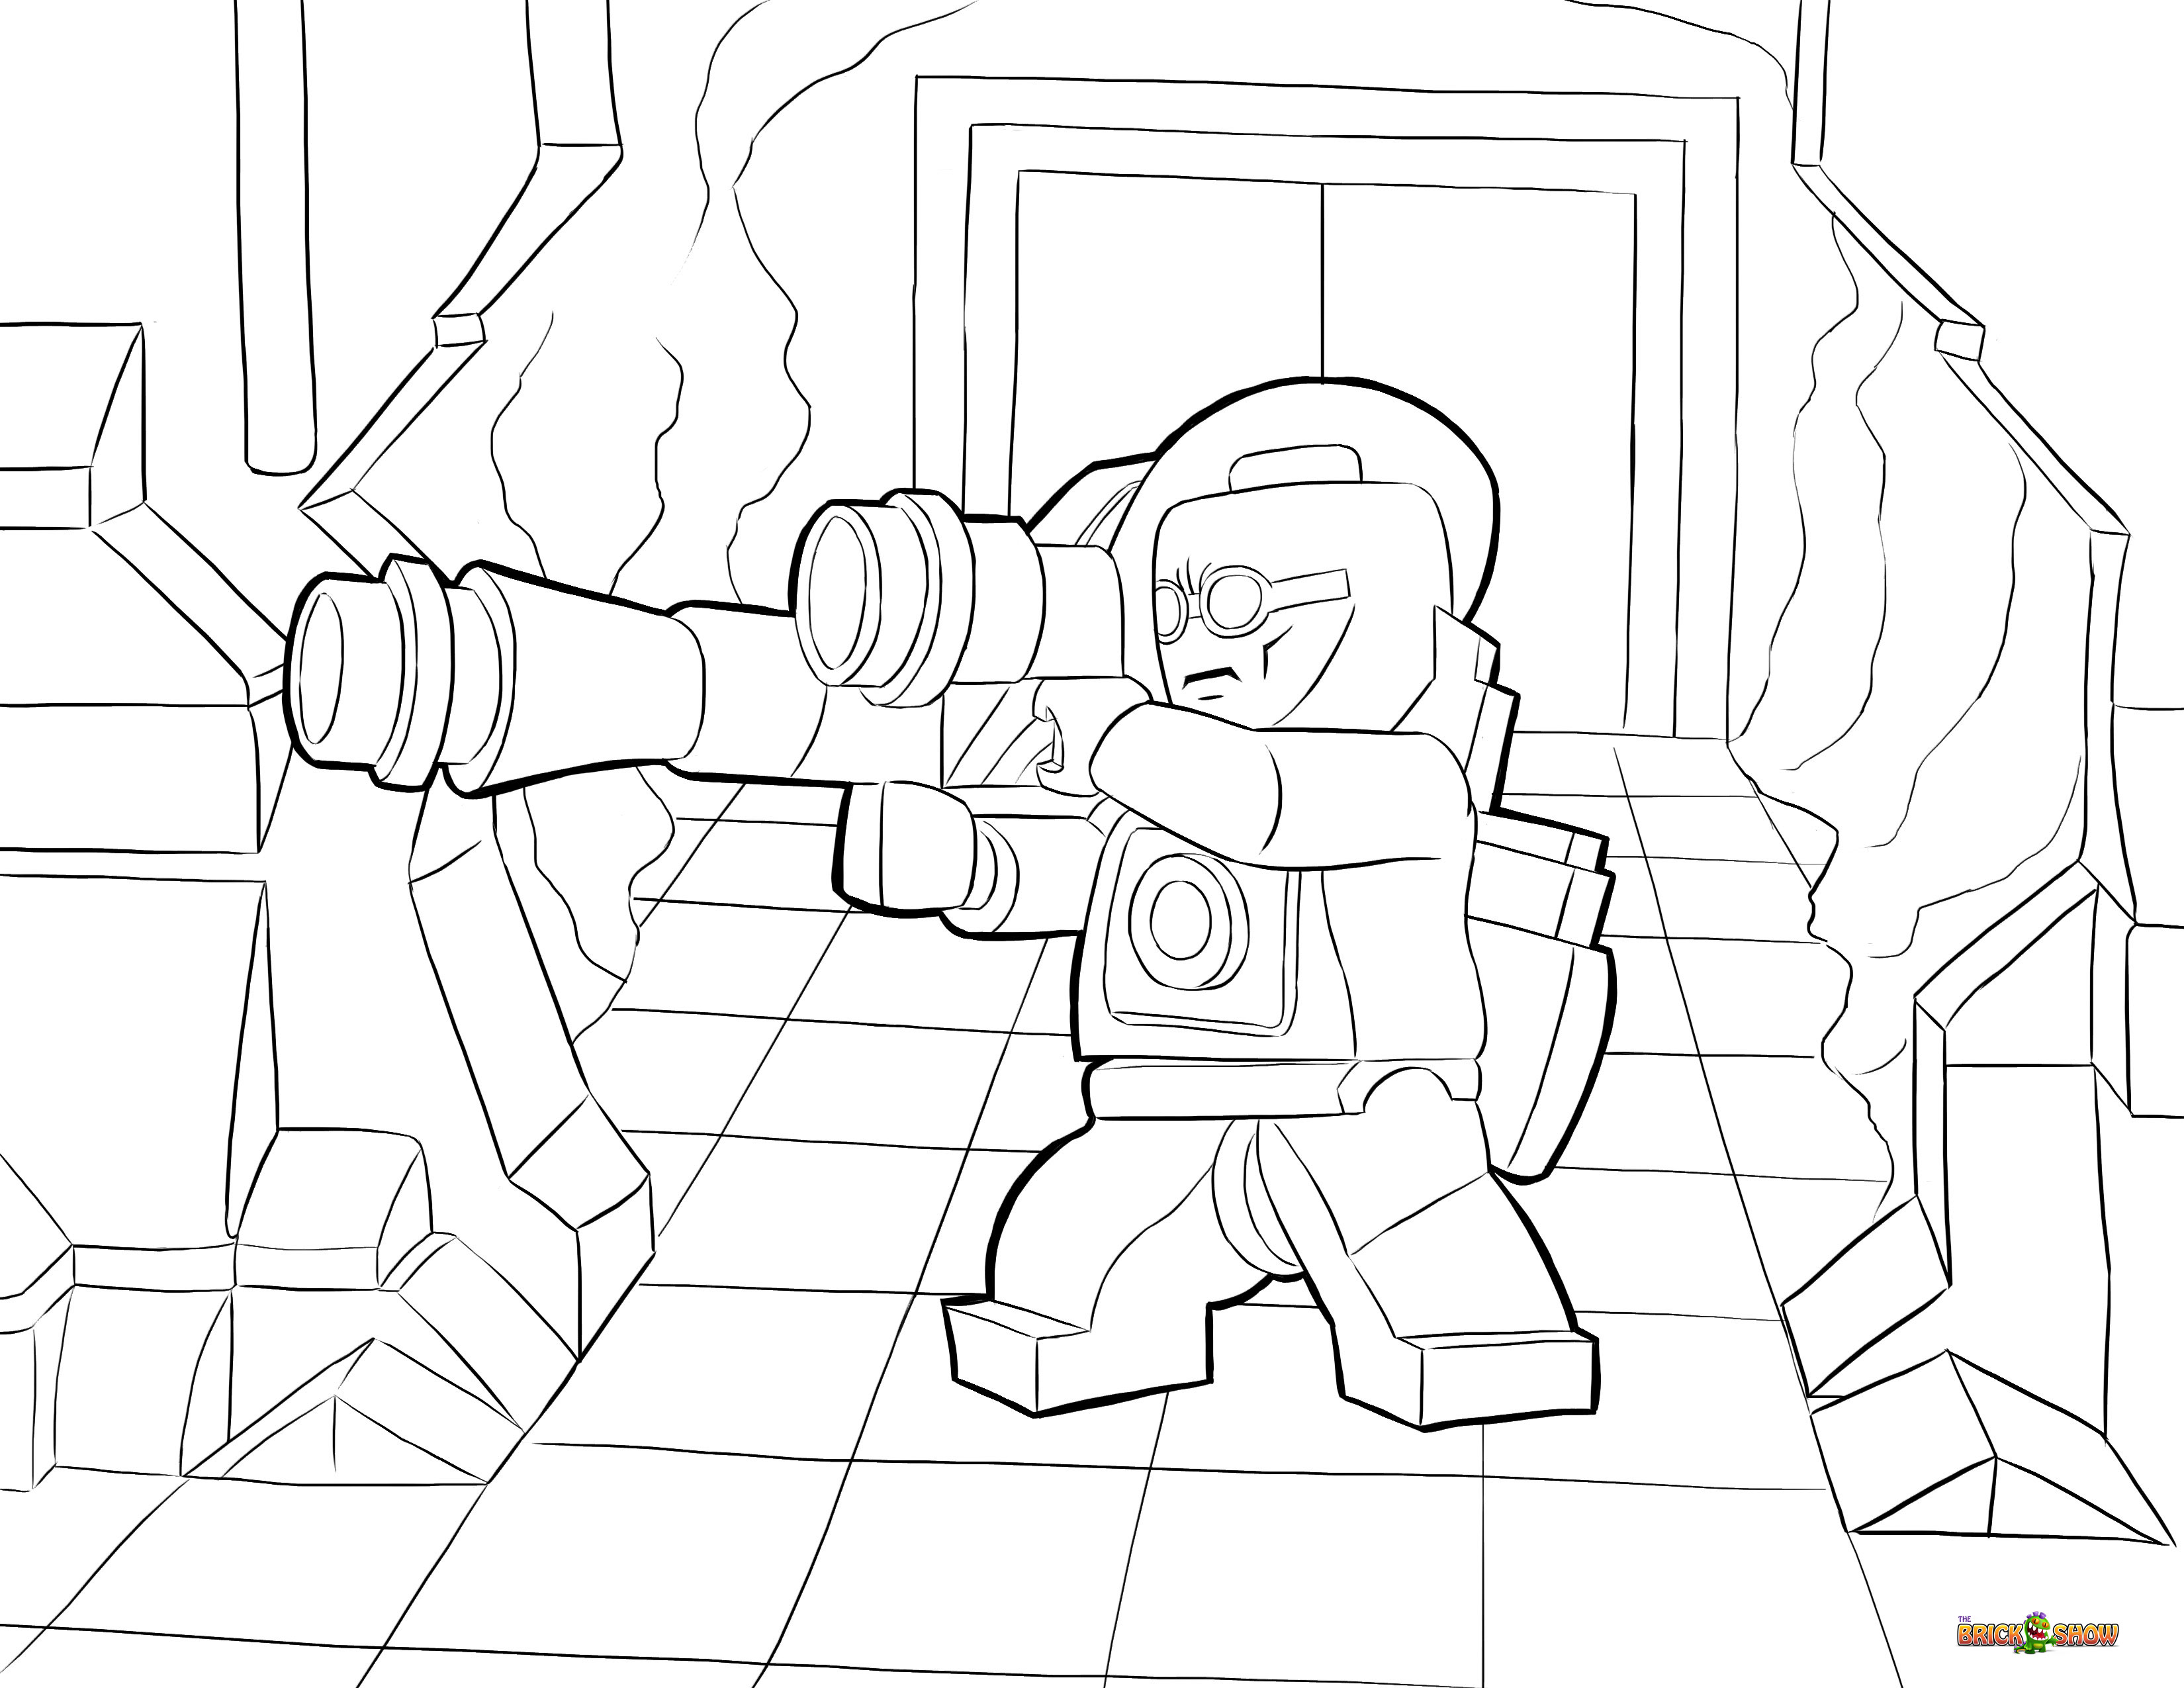 dc lego coloring pages - photo#15